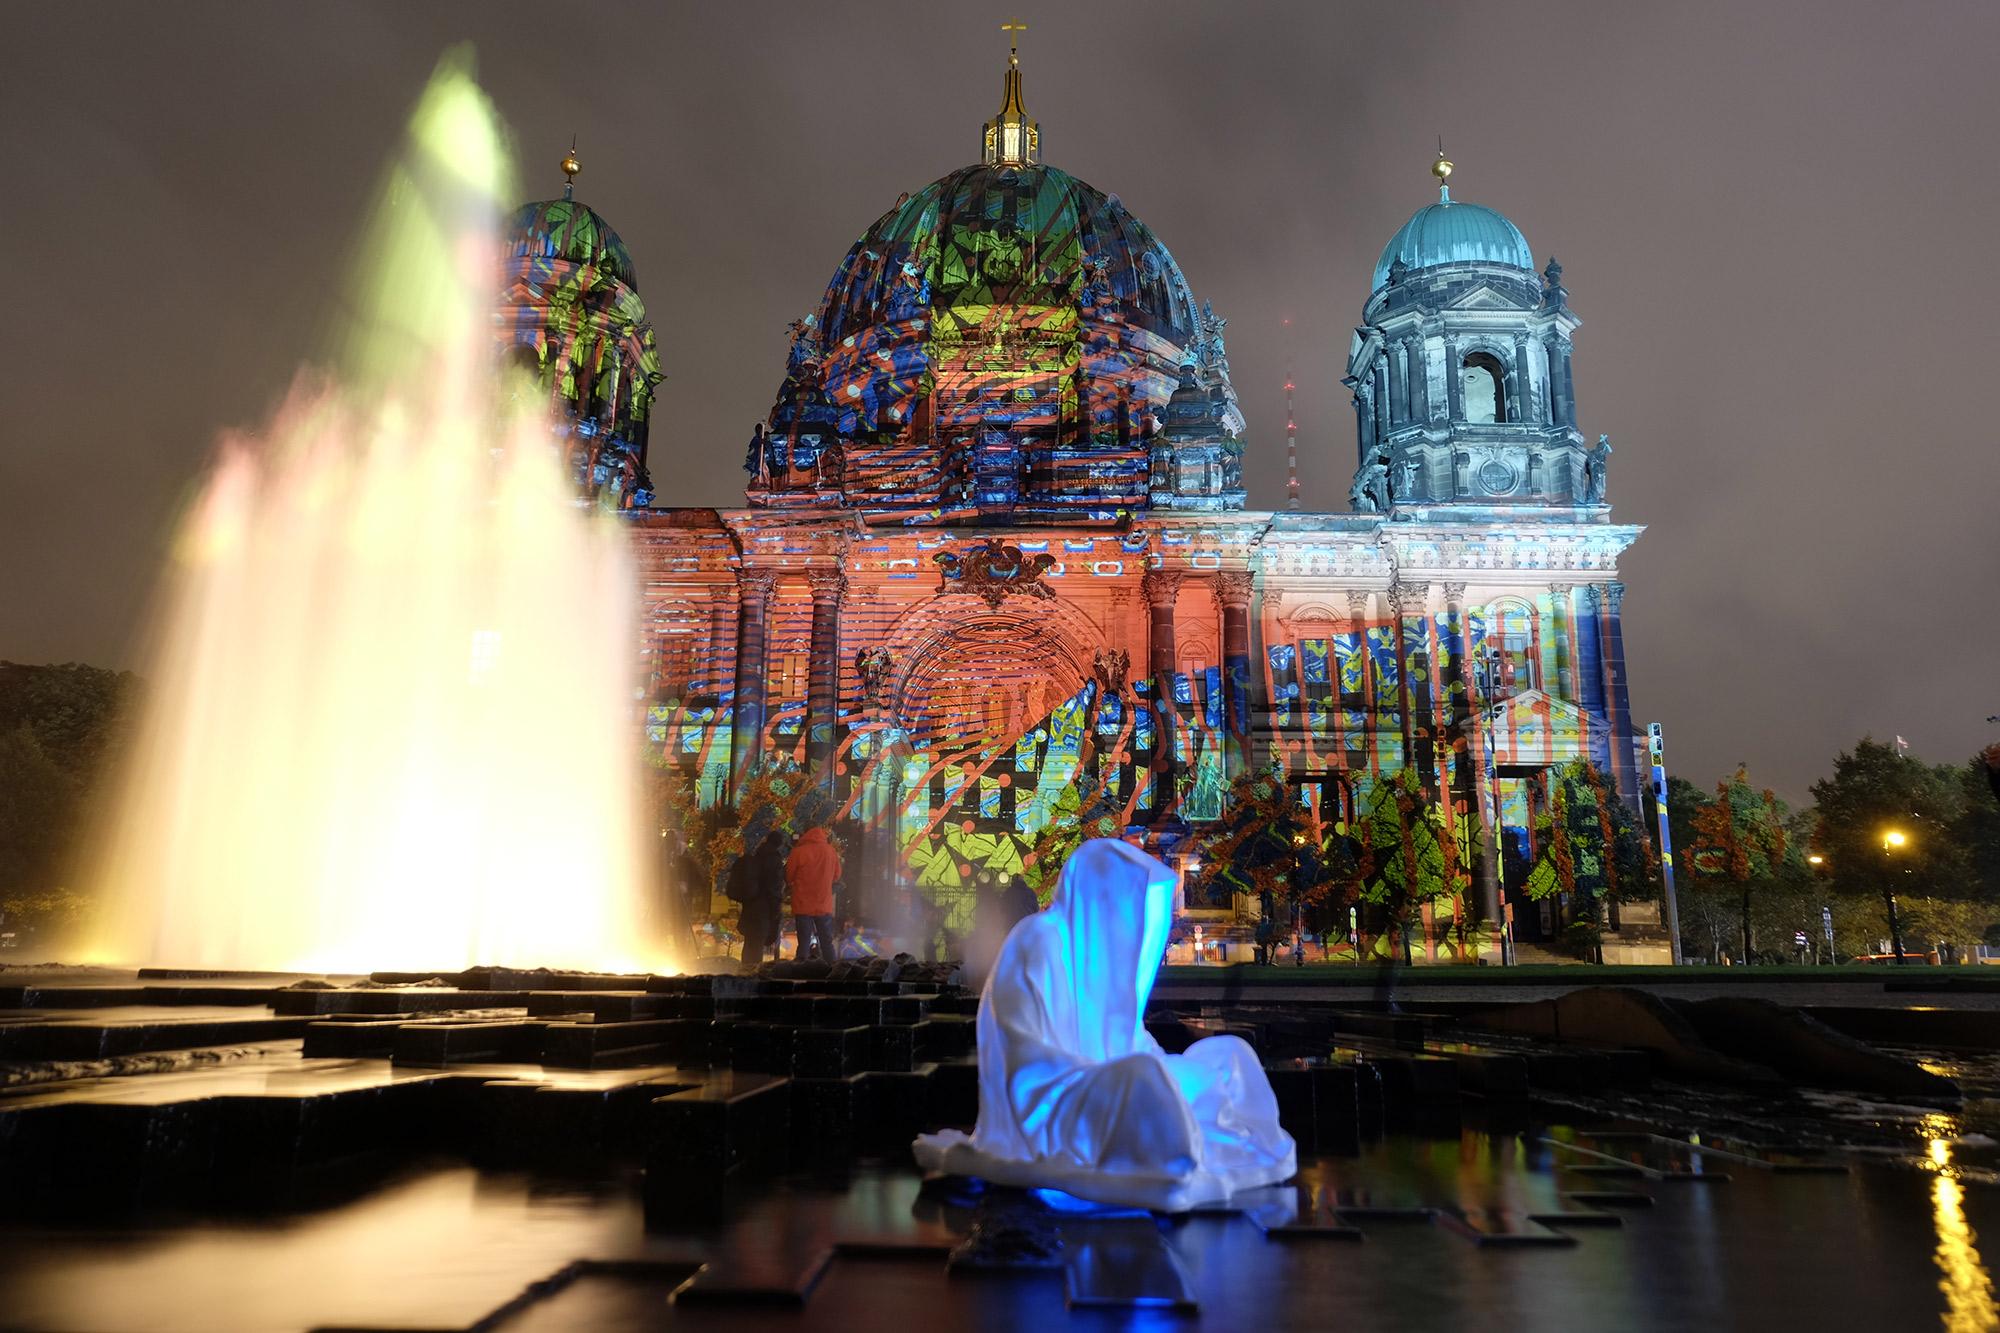 festival-of-lights-berlin-guardians-of-time-manfred-kielnhofer-lumina-light-contemporary-art-design-statue-sculpture-fineart-ghost-faceless-no-face-9336